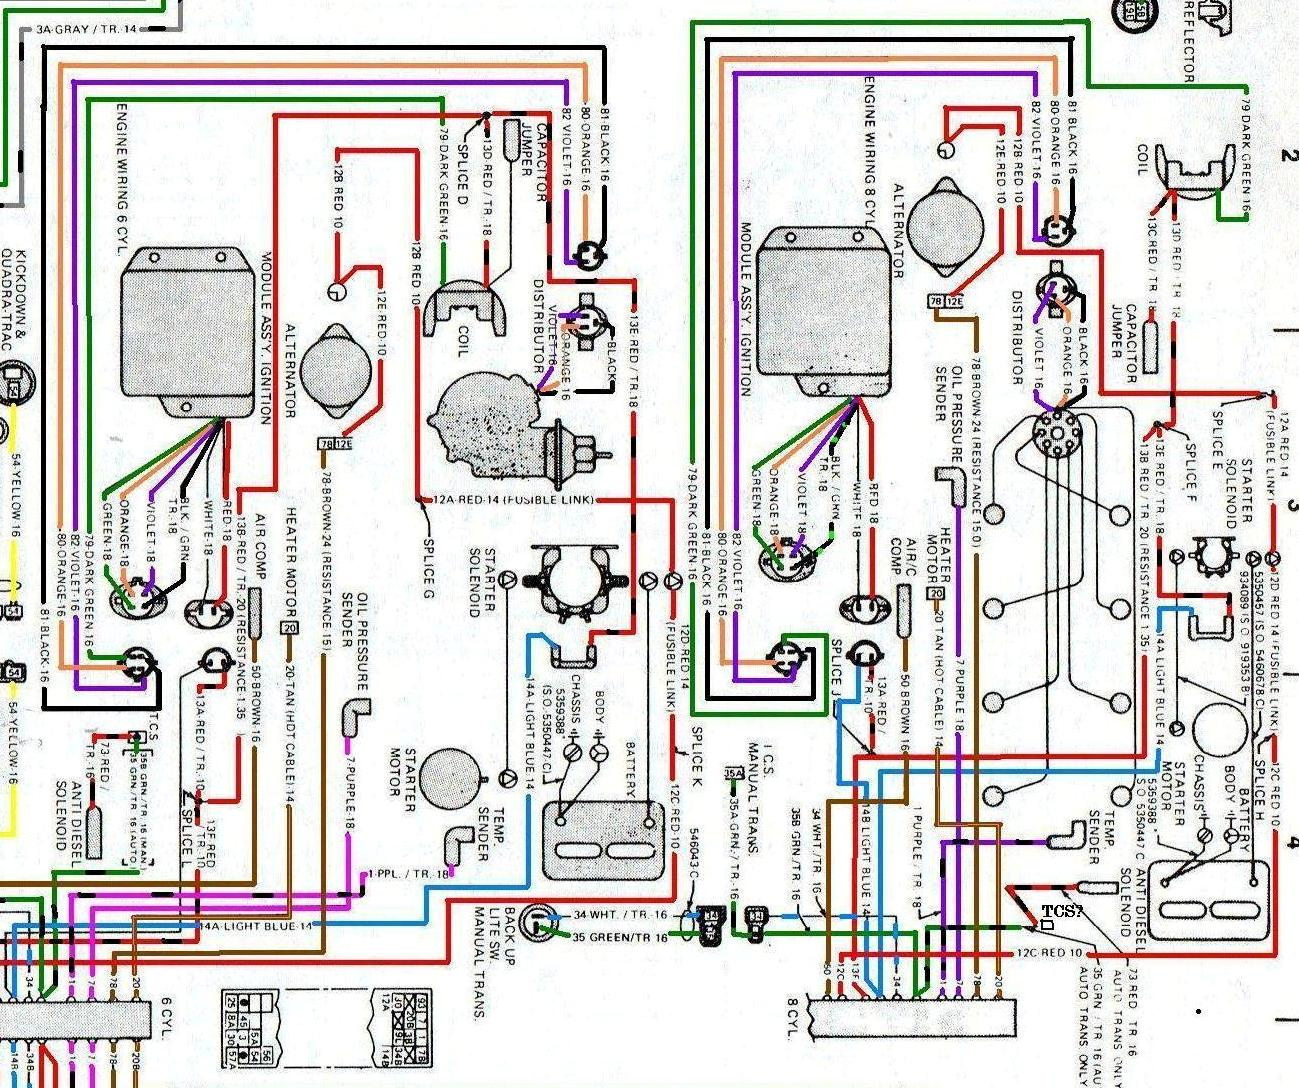 1990 crx radio wiring diagram club car ds gas ignition switch 87 honda stereo 300zx